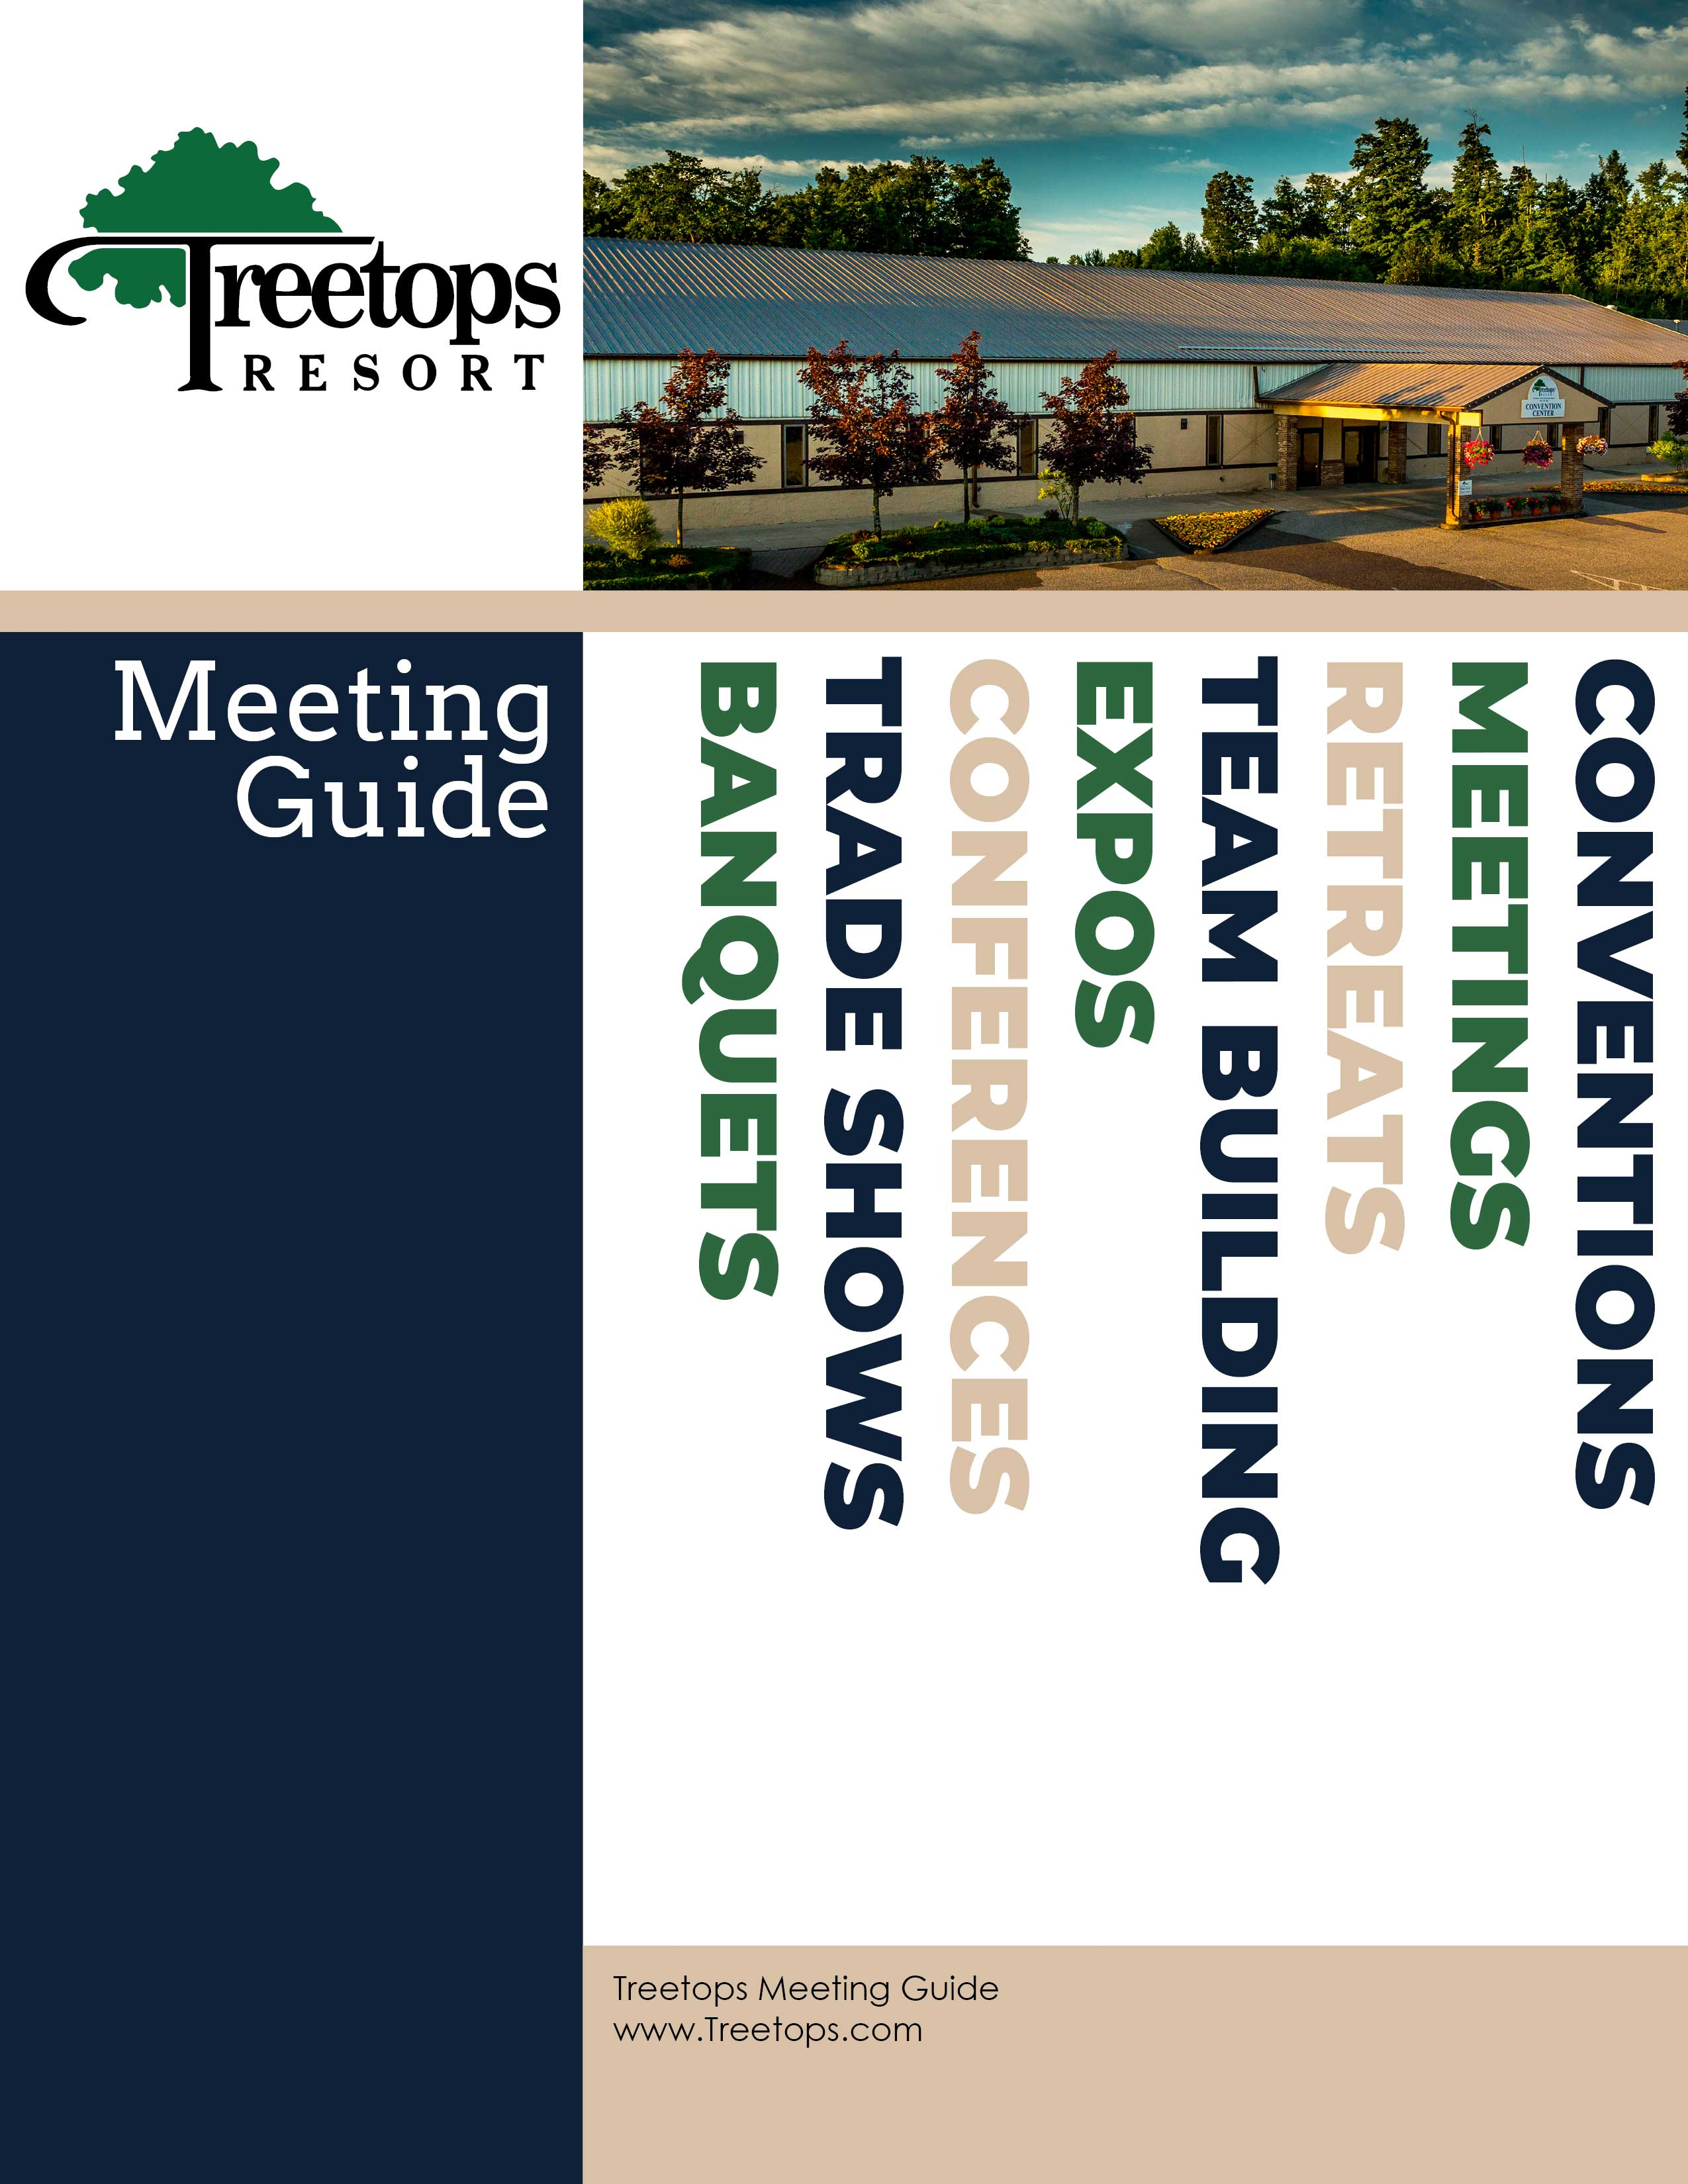 Treetops meeting guide cover